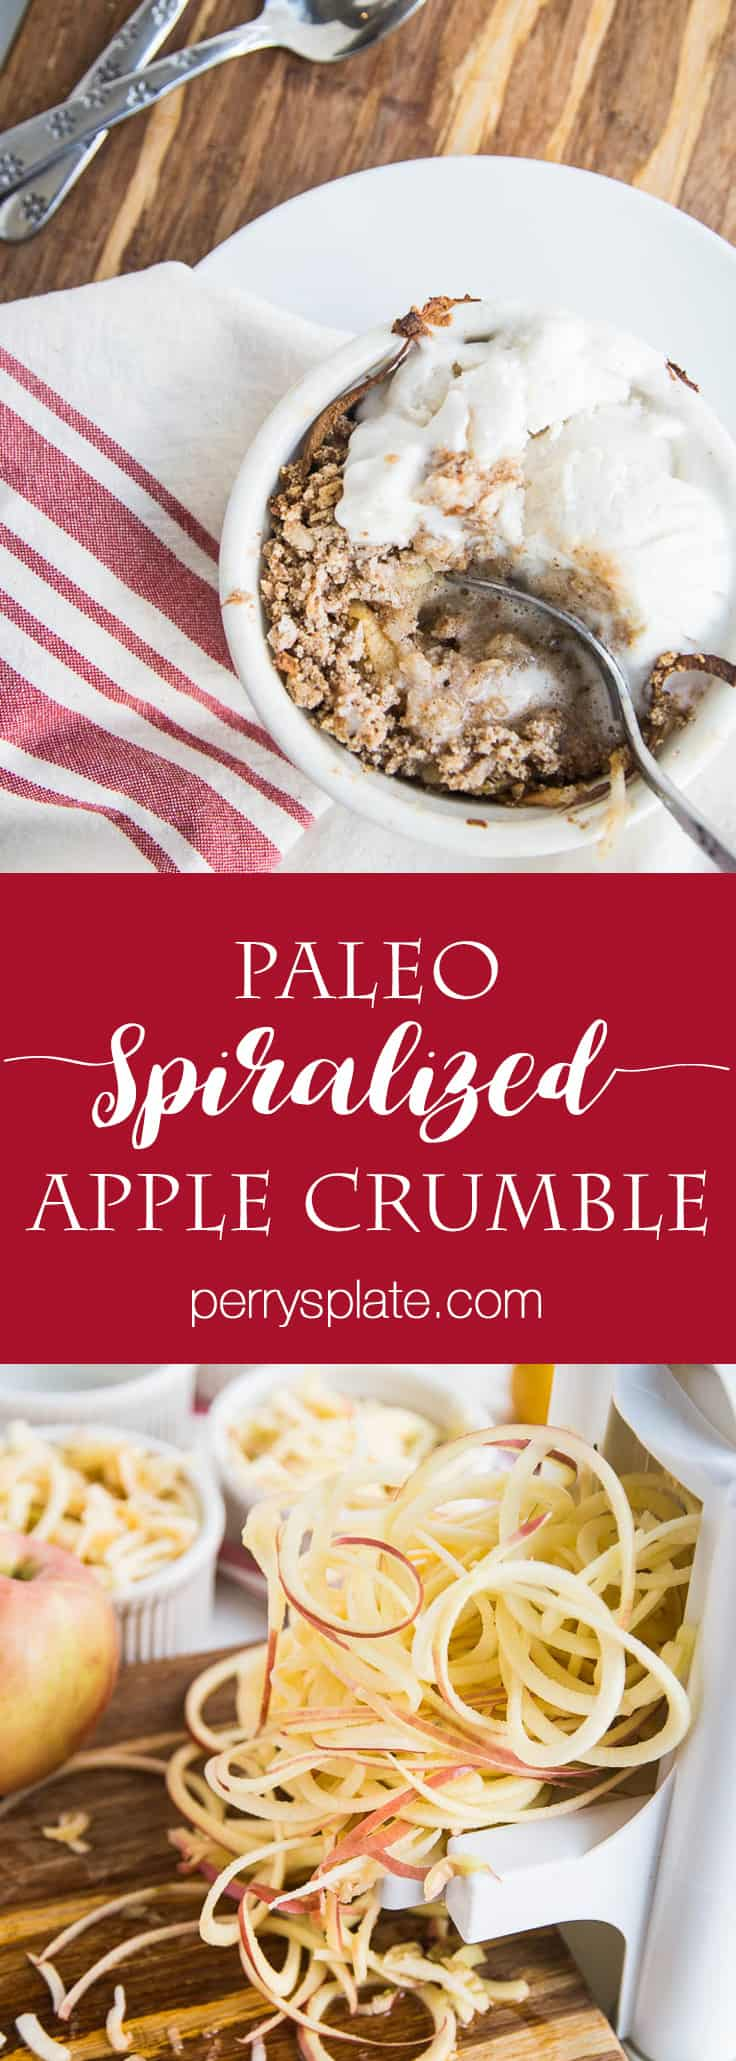 Spiralized Paleo Apple Crumble | paleo recipes | apple recipes | gluten free recipes | dairy free recipes | paleo dessert recipes | perrysplate.com